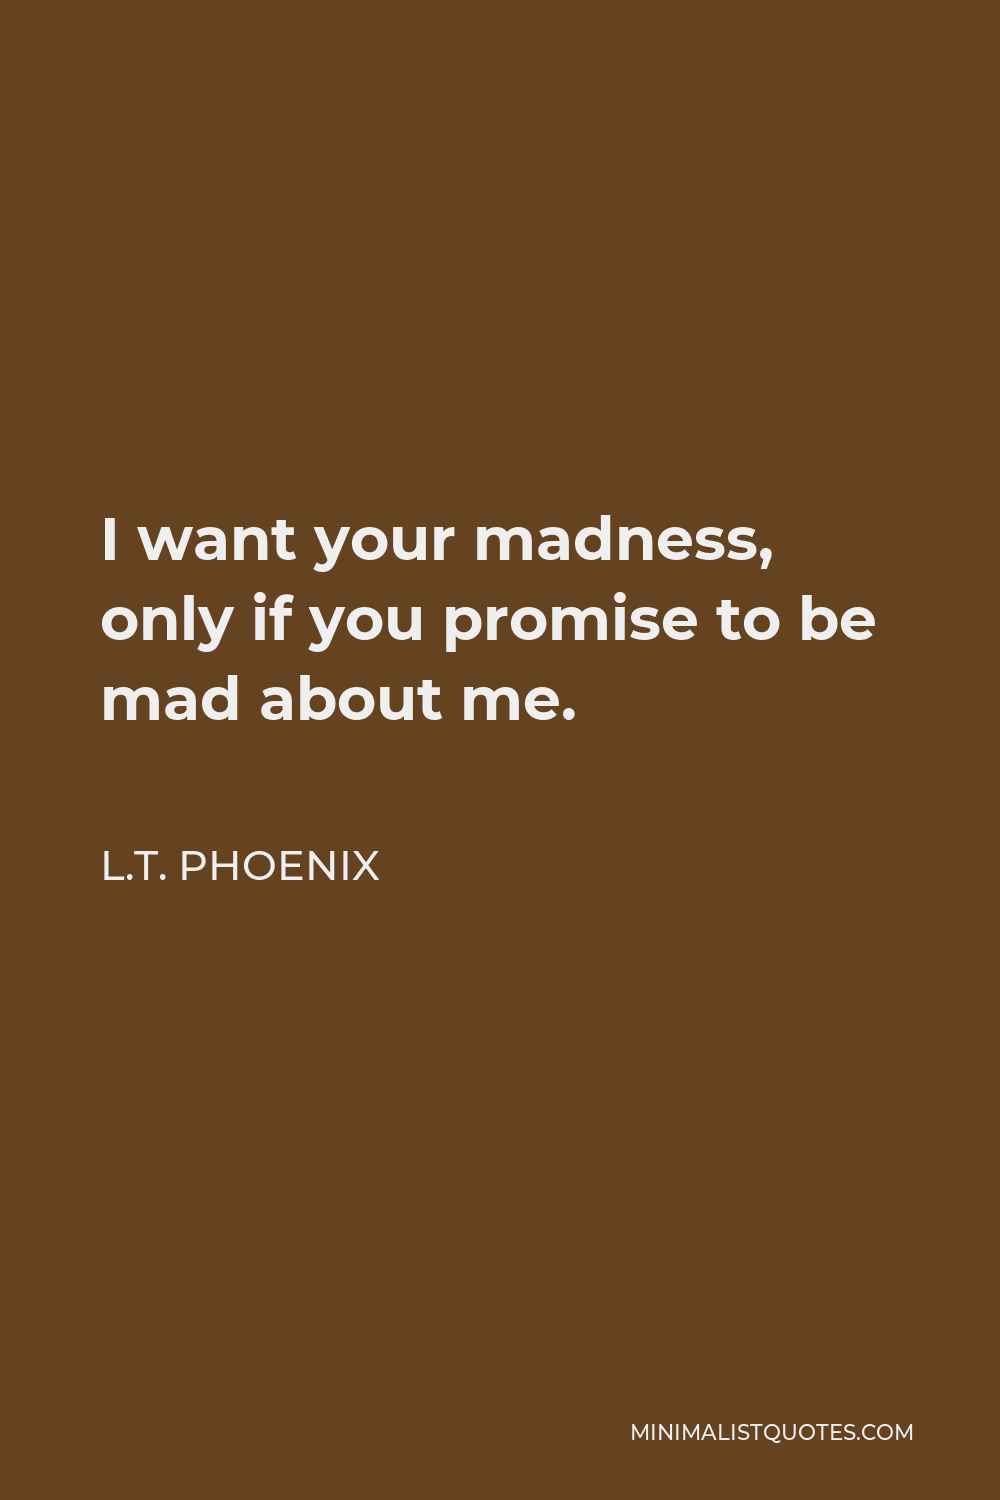 L.T. Phoenix Quote - I want your madness, only if you promise to be mad about me.